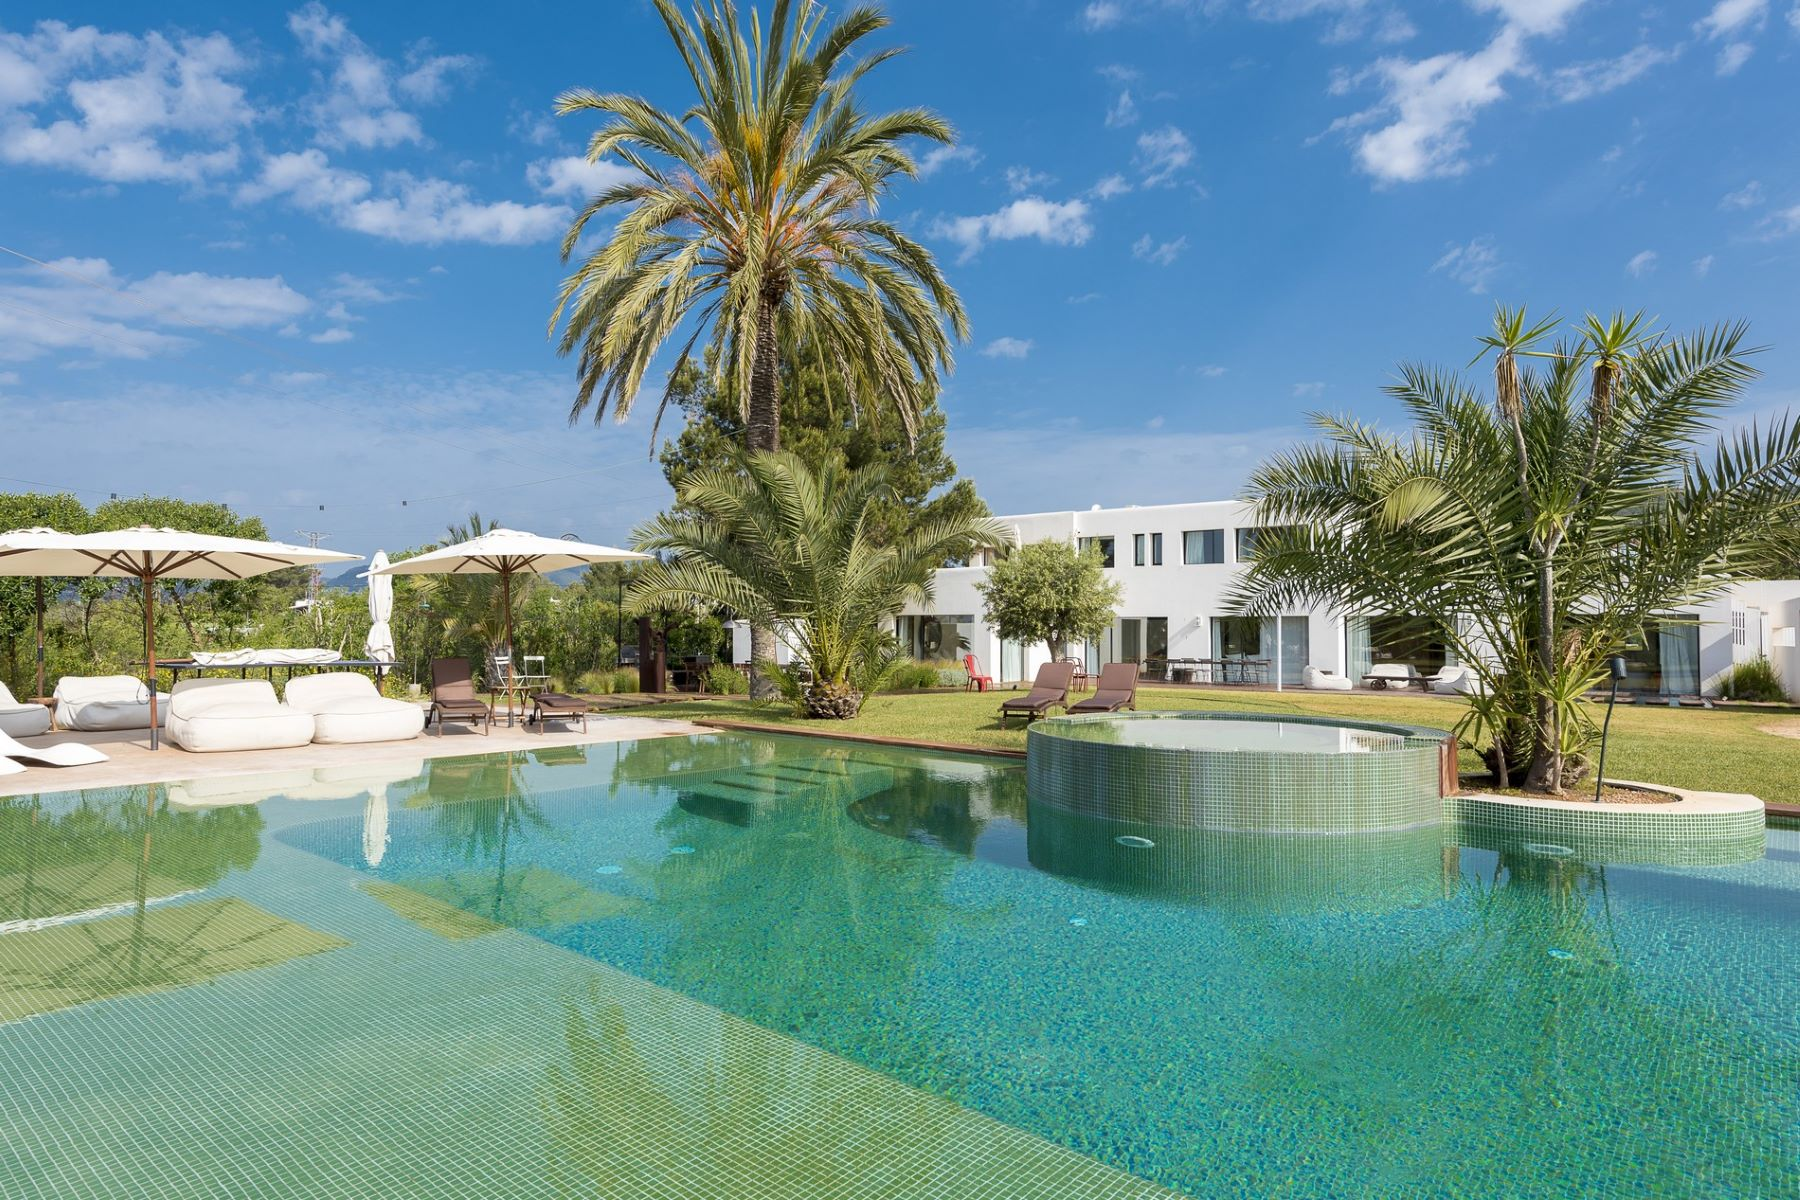 Casa Unifamiliar por un Venta en Beautiful house near Cala Jondal San Jose, Ibiza, 07830 España